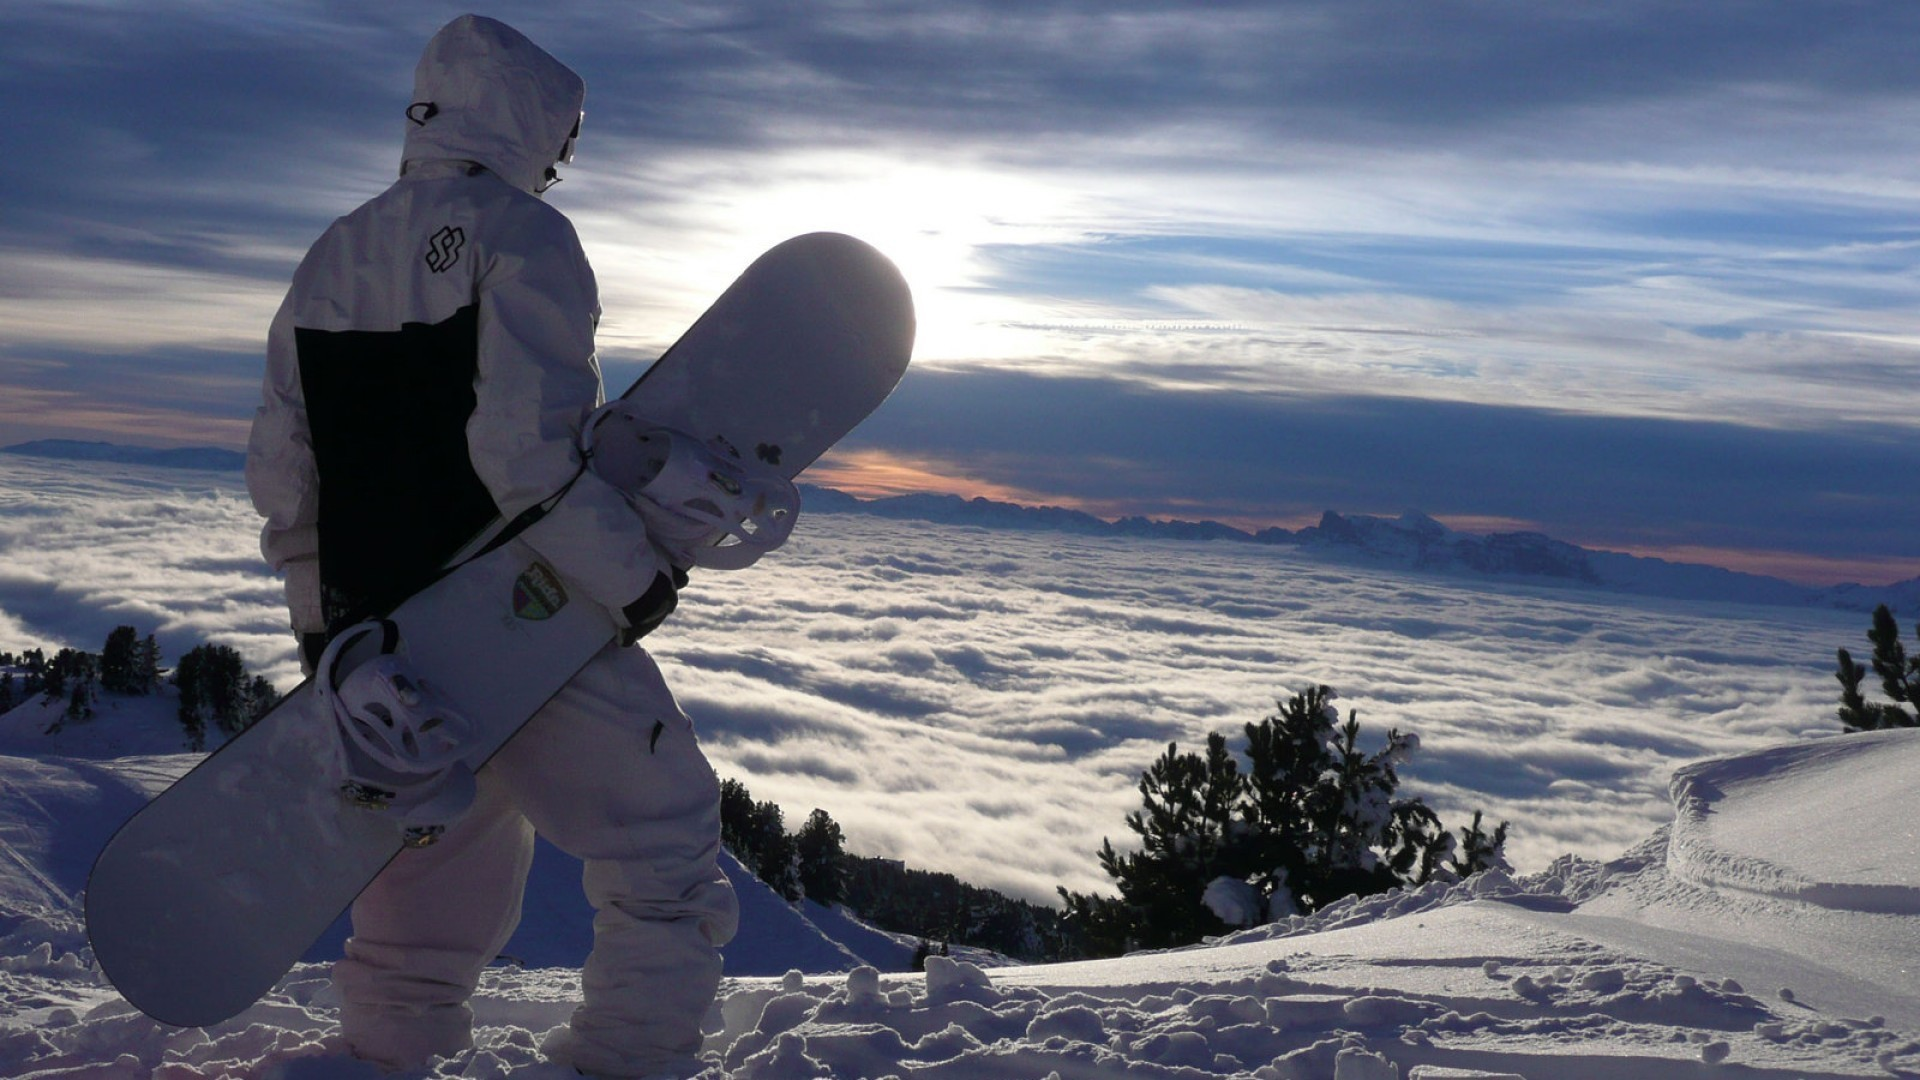 hd start to man snowboarding mountain wallpapers photo